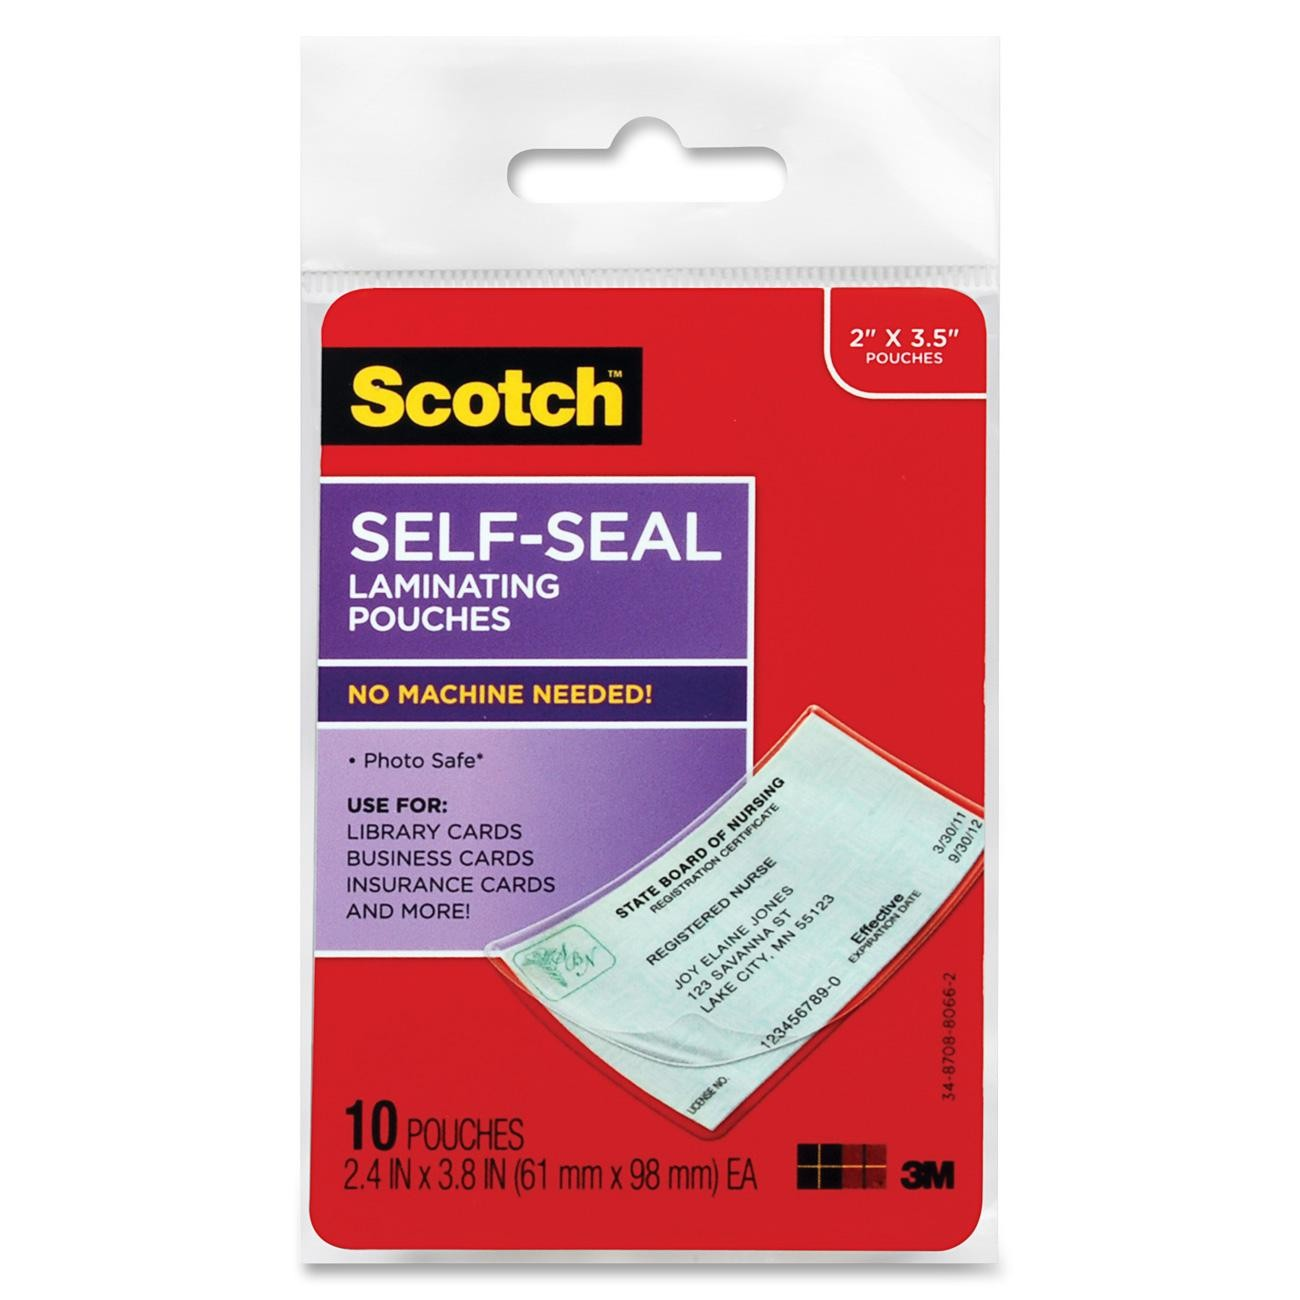 Scotch Self-Sealing Laminating Pouch, 10 Sheets per Pack, Business Card